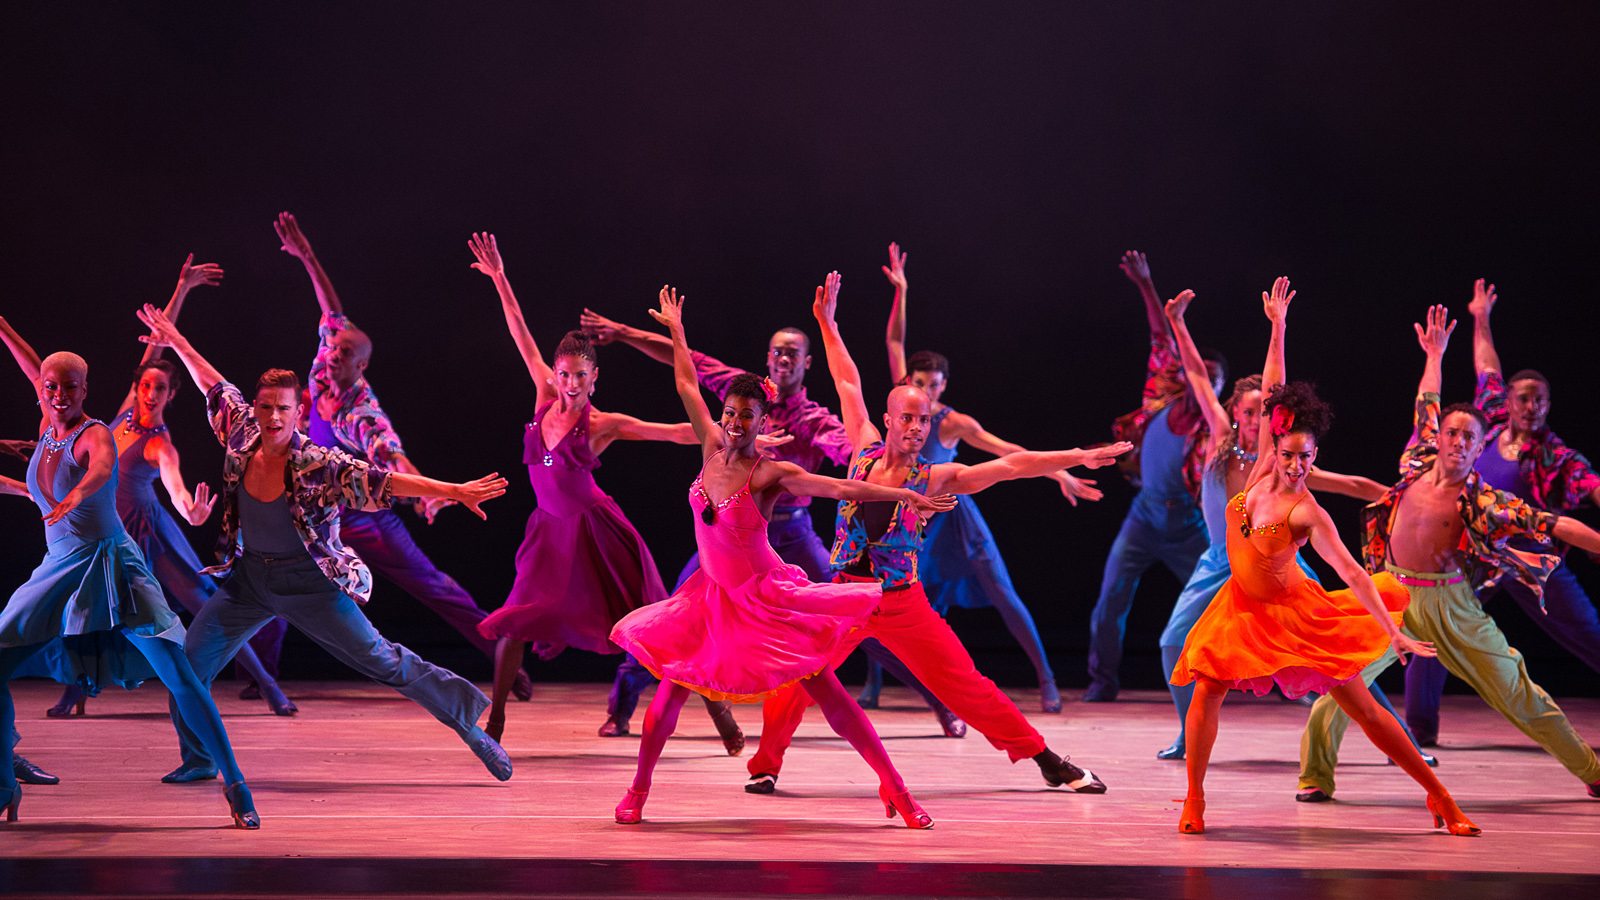 The Winter in Lisbon | Alvin Ailey American Dance Theater